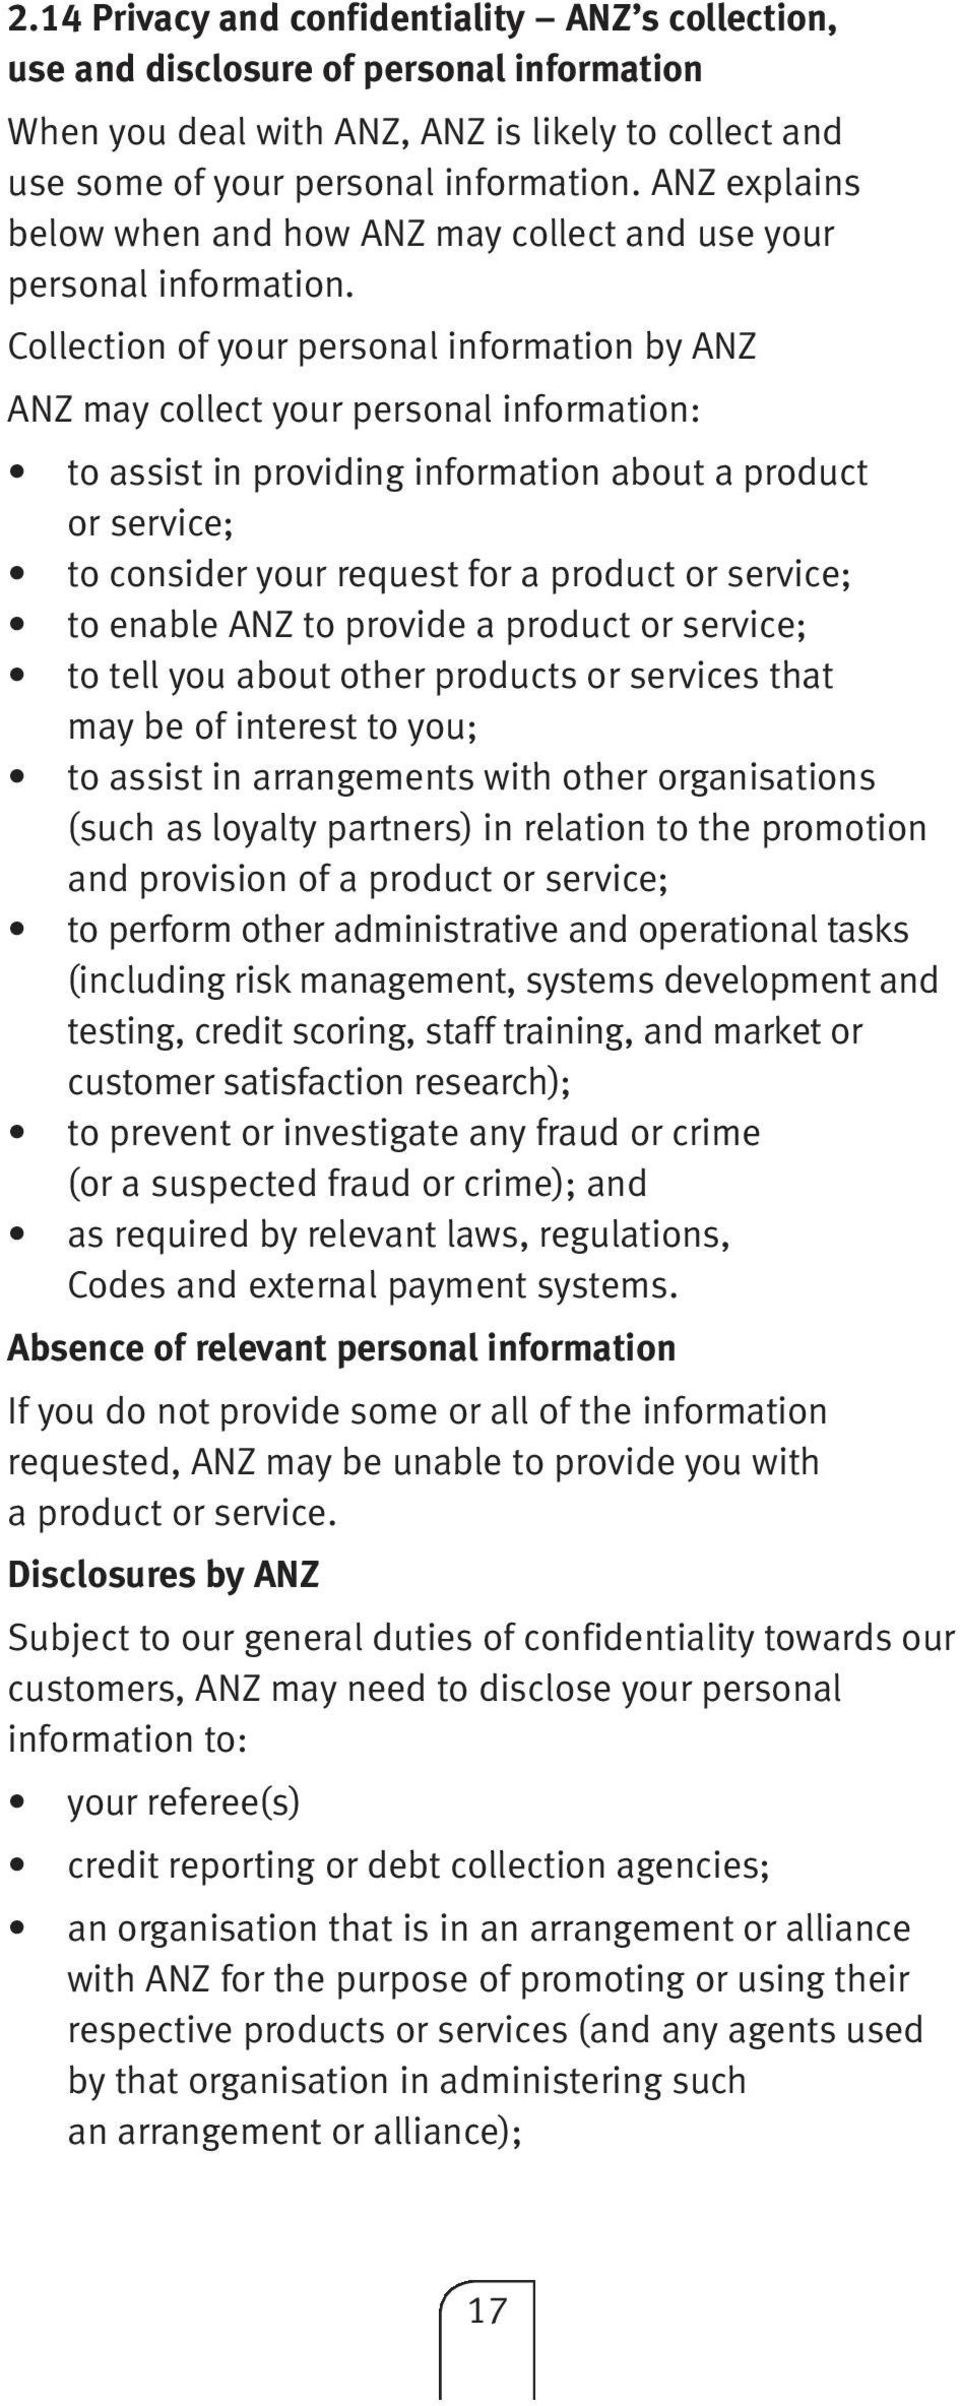 Collection of your personal information by ANZ ANZ may collect your personal information: to assist in providing information about a product or service; to consider your request for a product or